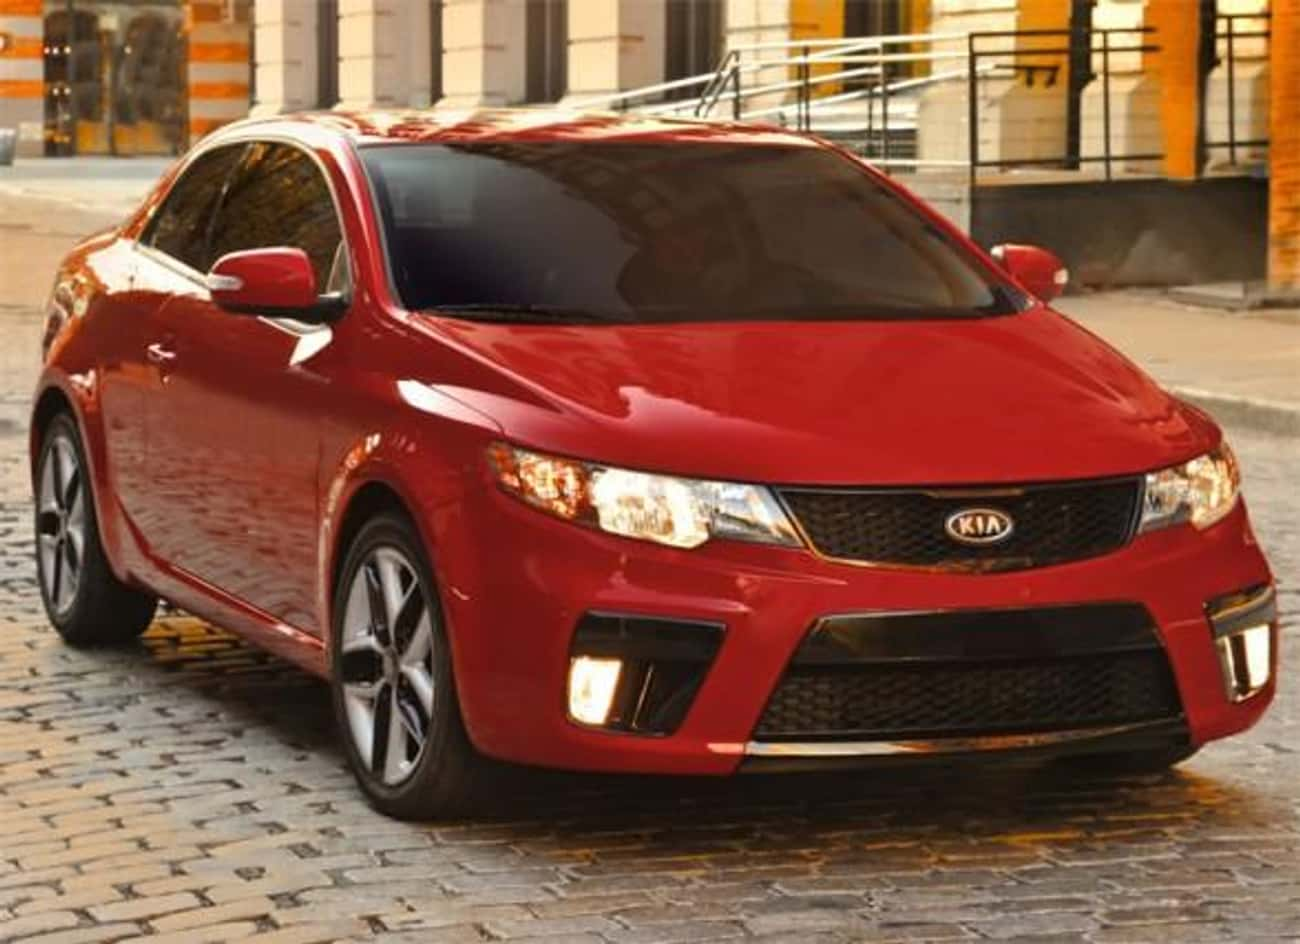 Kia Forte Koup is listed (or ranked) 4 on the list Sporty Cars With Good Gas Mileage